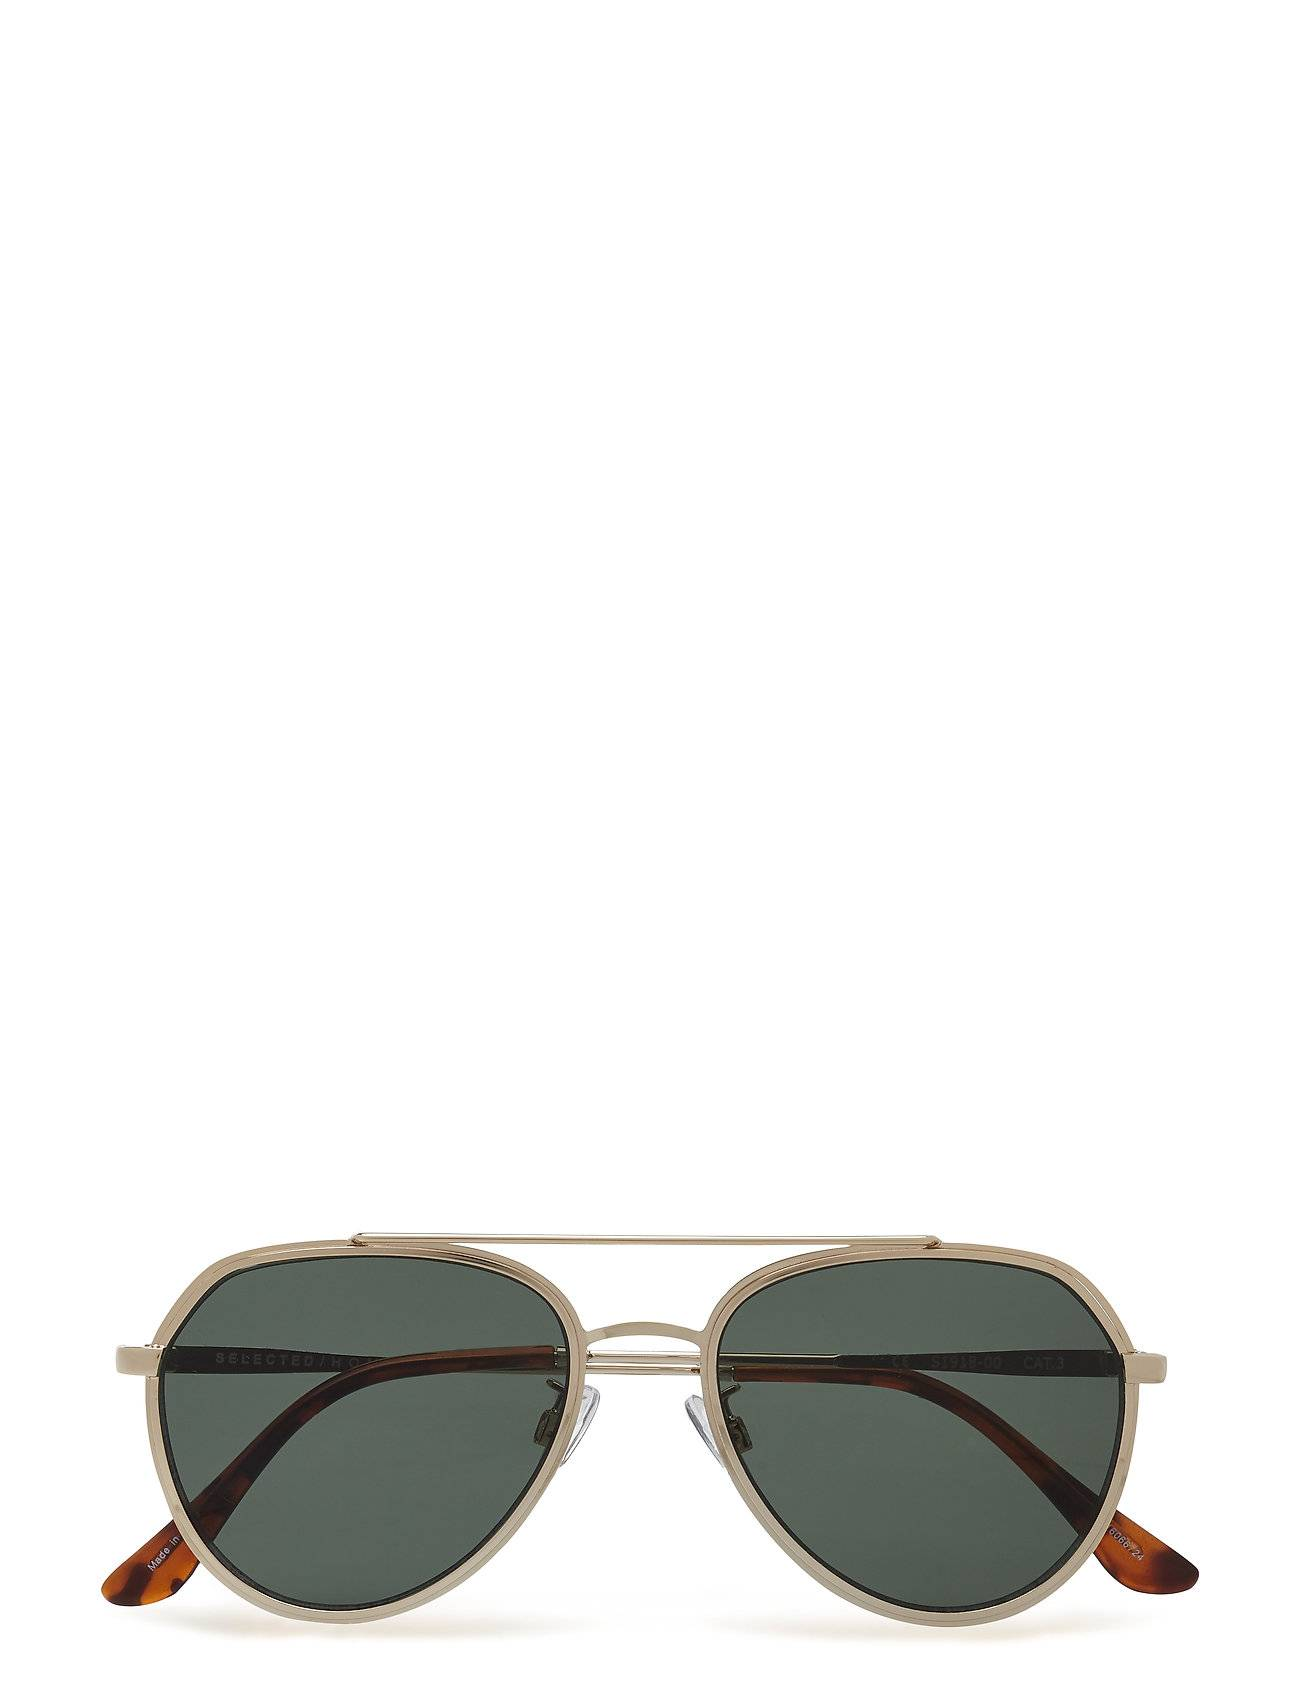 Image of SELECTED HOMME Slhthomas Sunglasses B Aurinkolasit Keltainen SELECTED HOMME